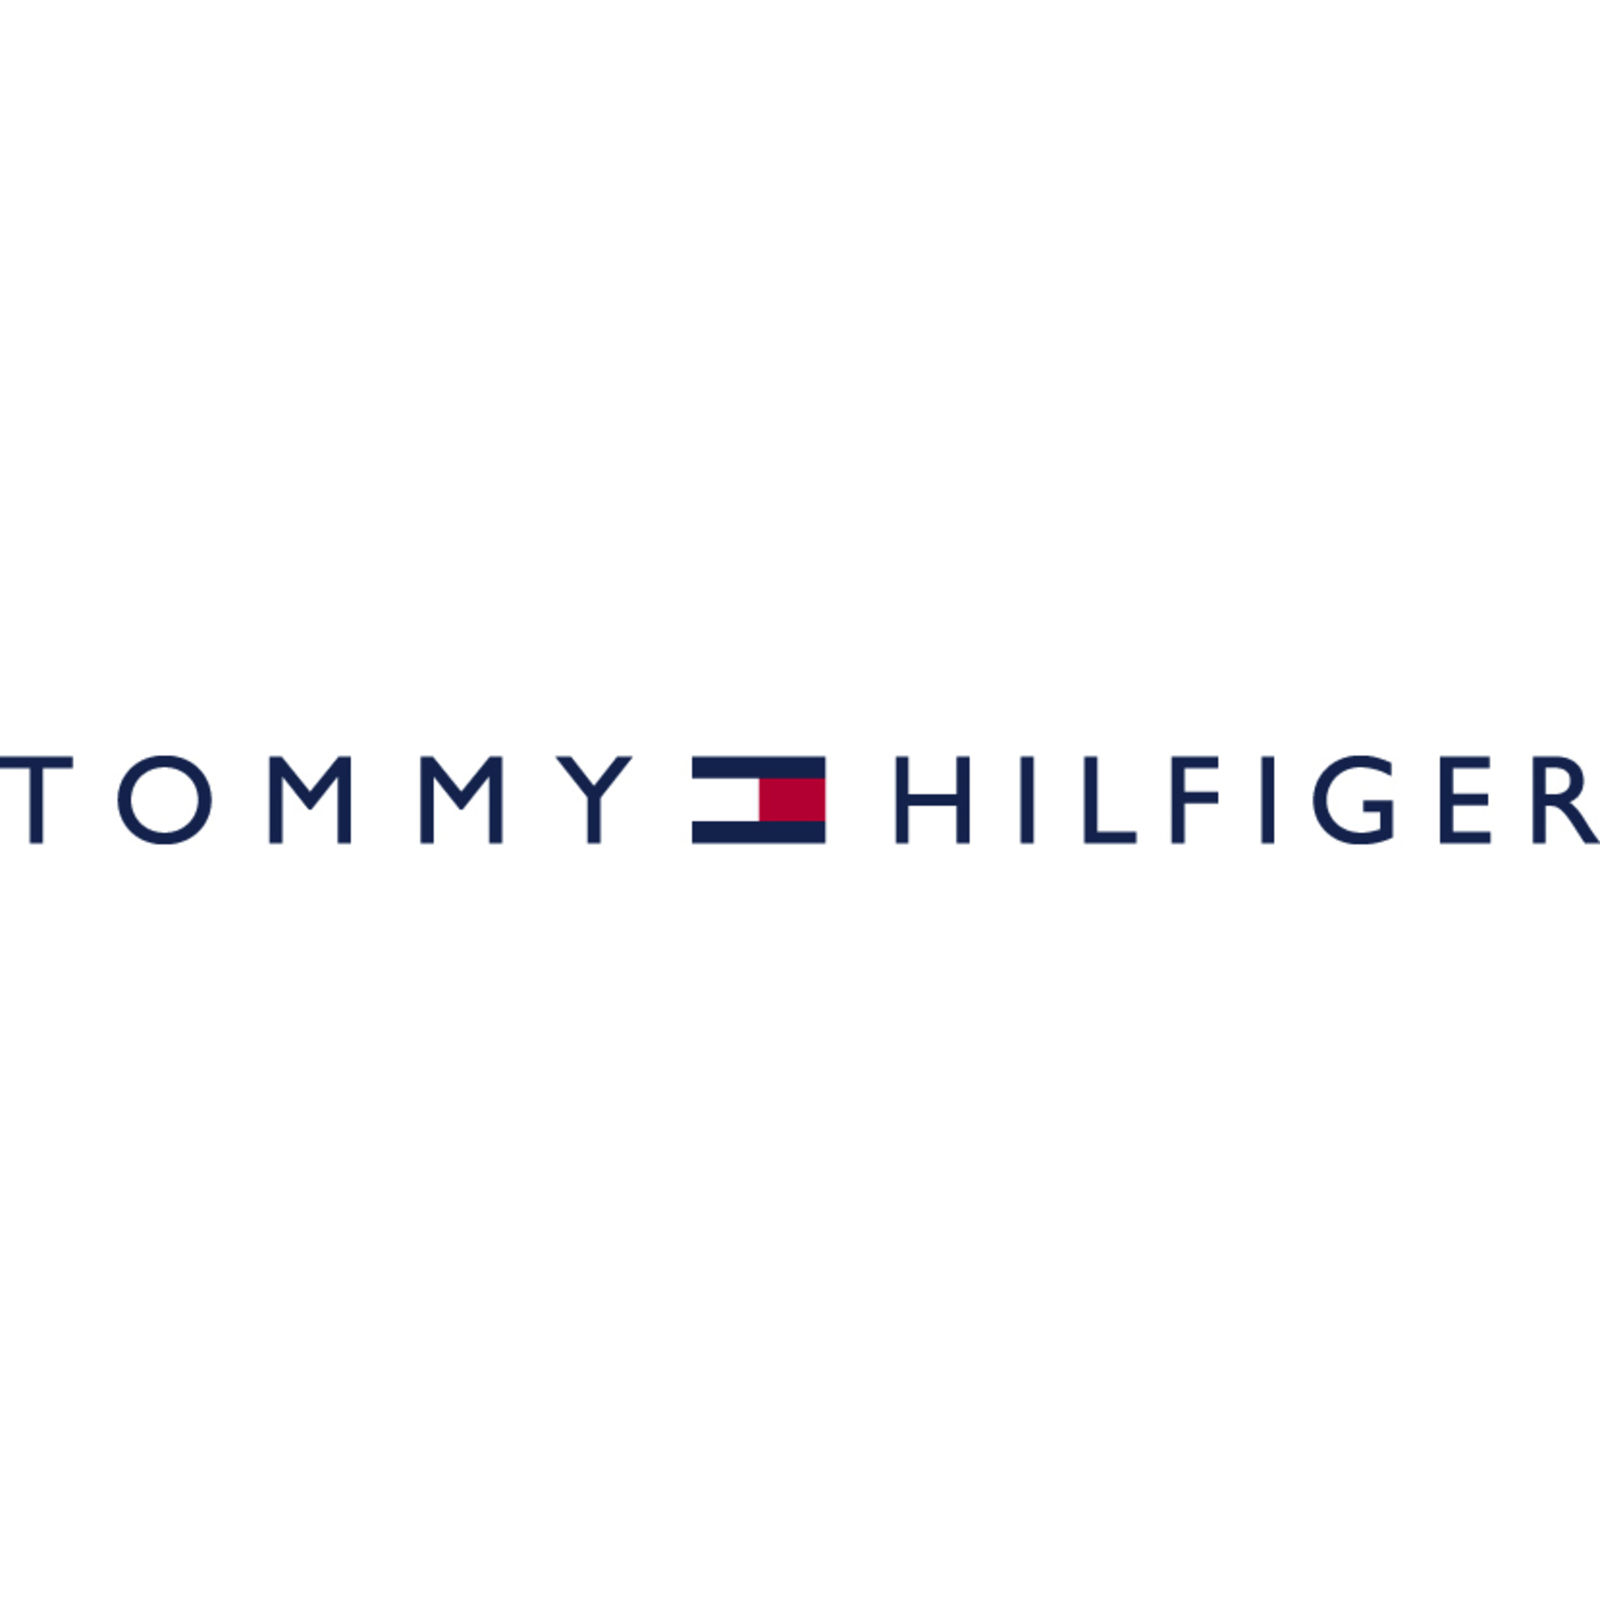 TOMMY HILFIGER (Afbeelding 1)